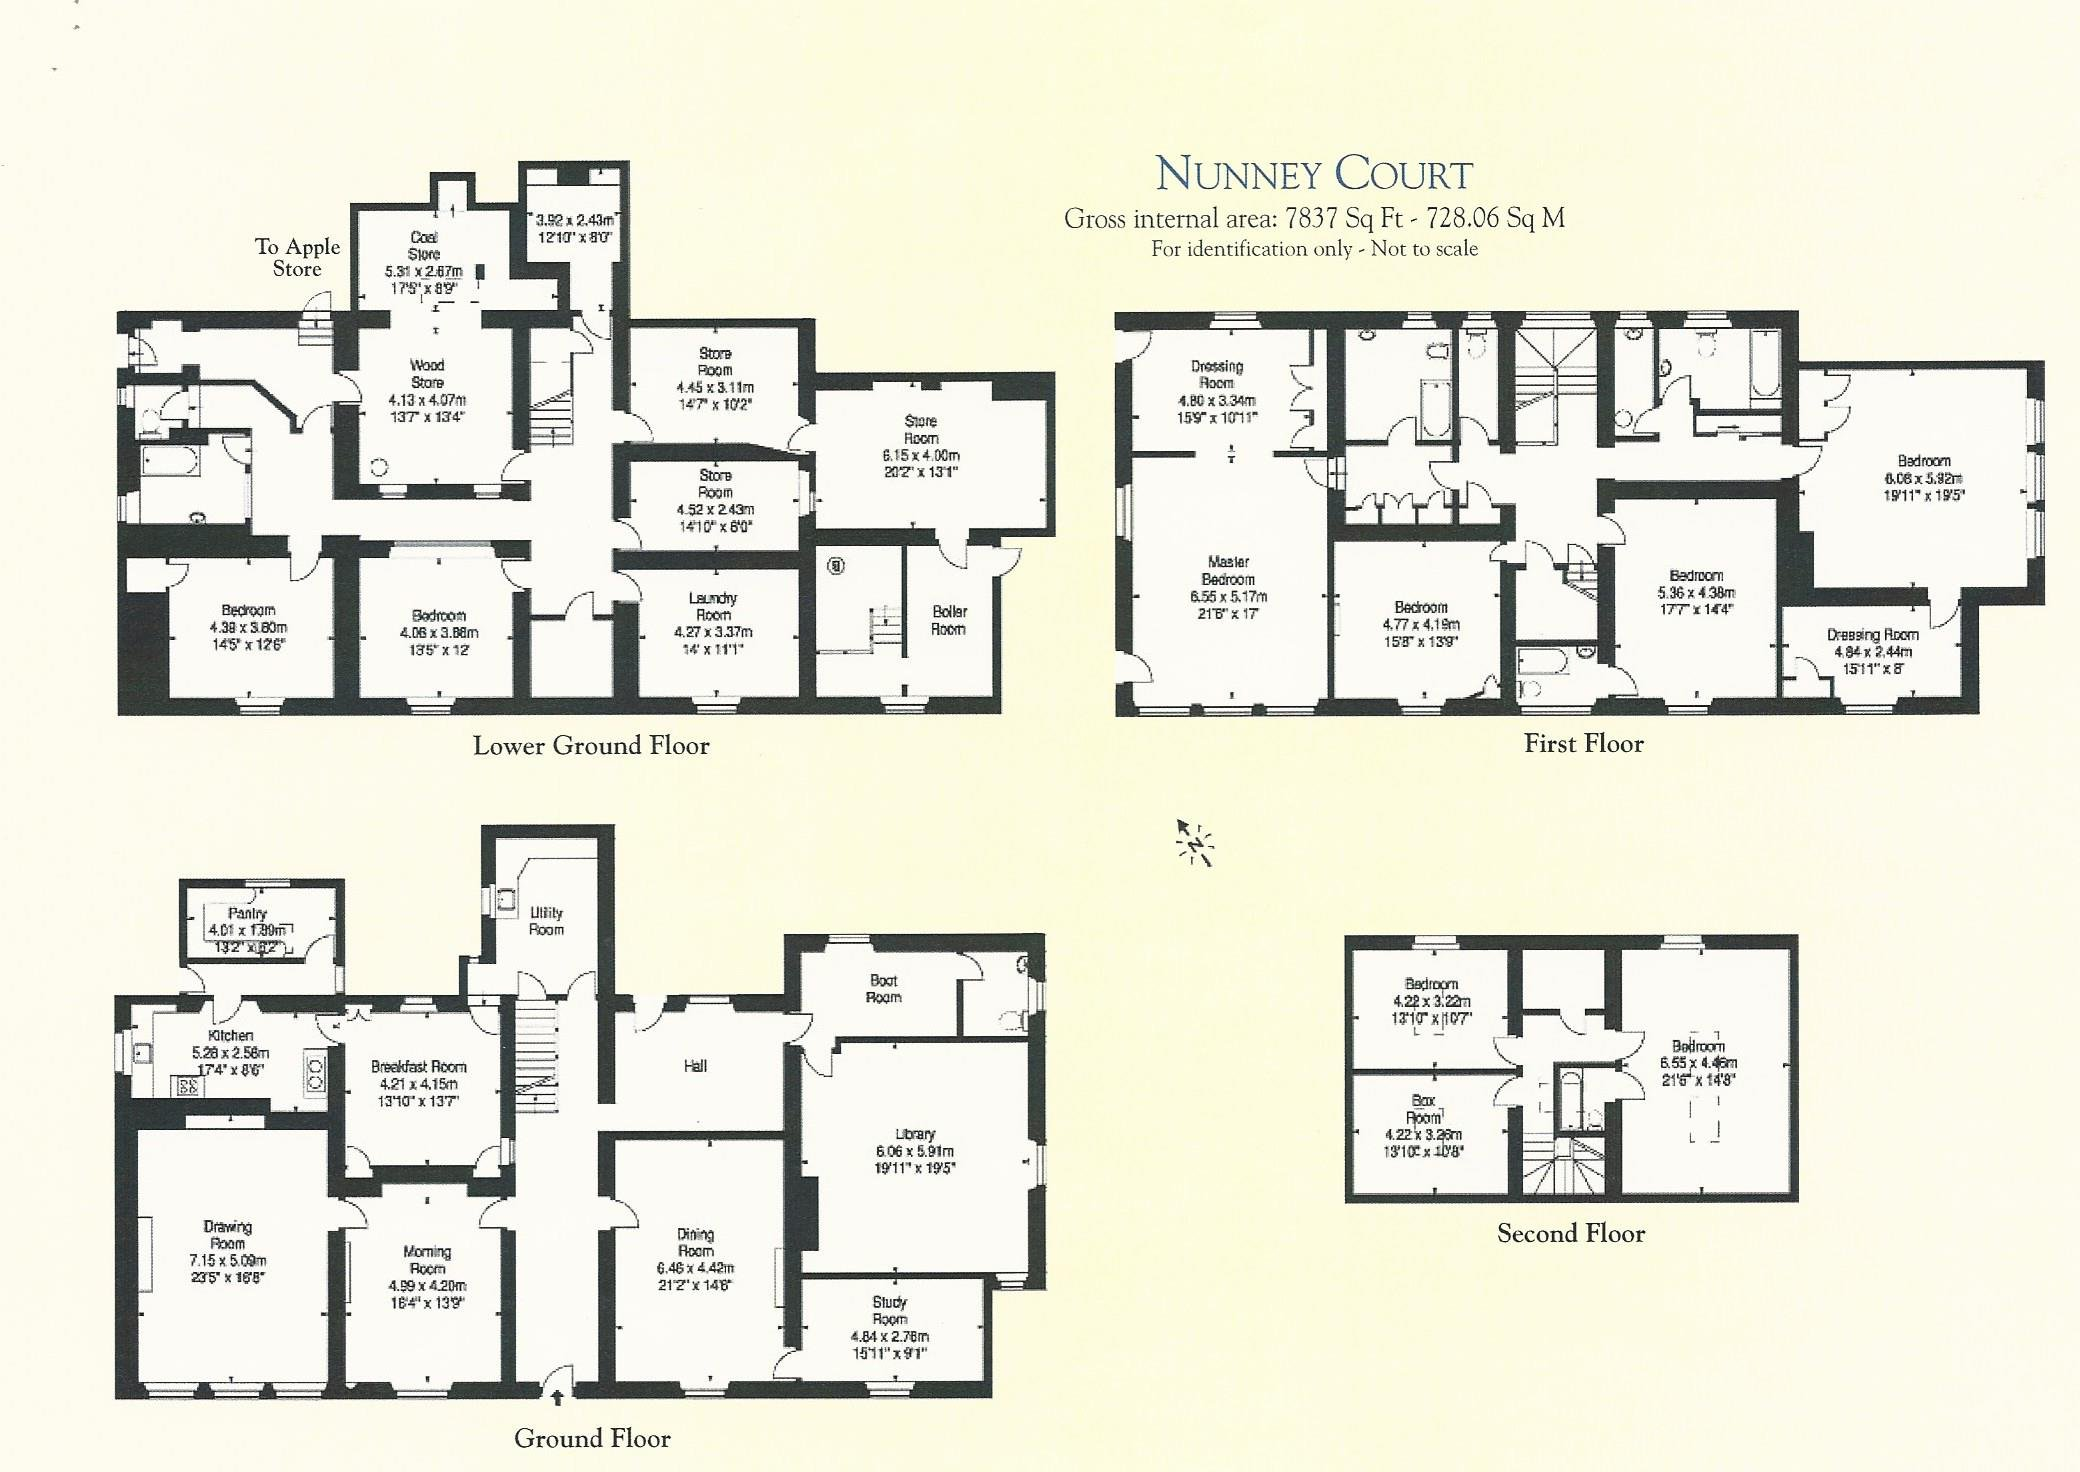 19th century manor house floor plans home design and style Manor house floor plan